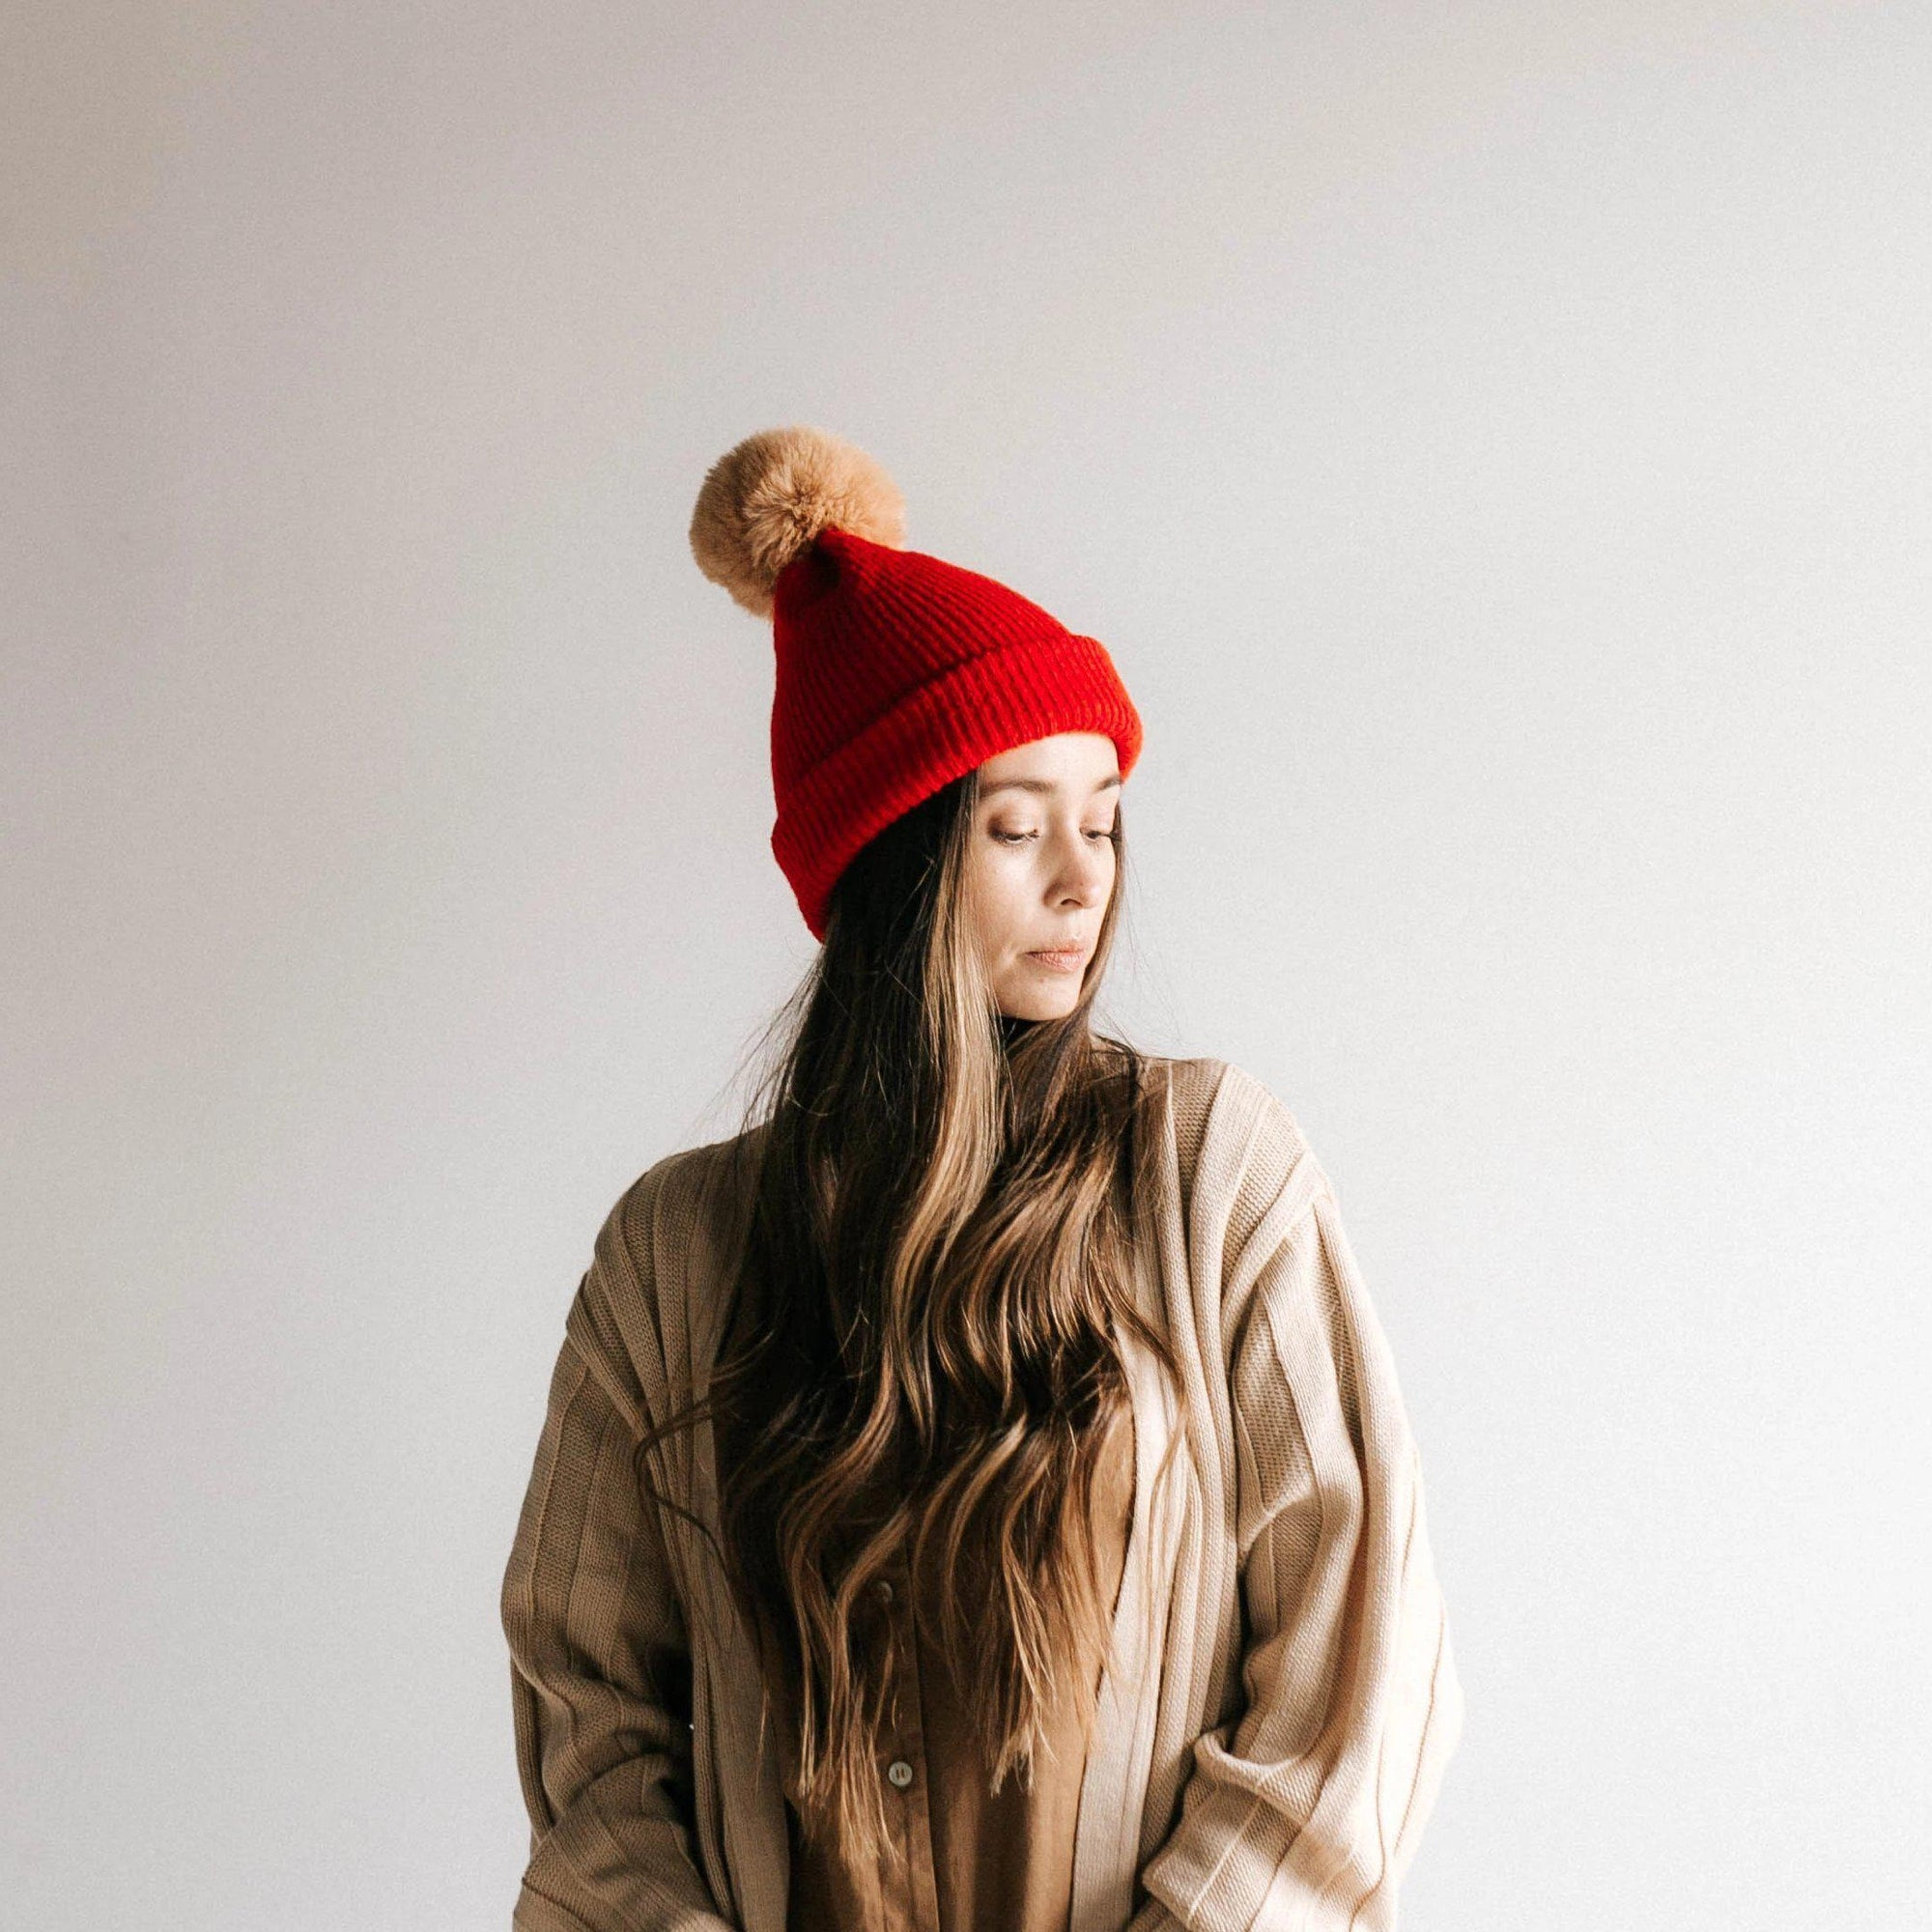 GIGI PIP Hats for Women- Dylan Beanie - Red with Tan Pom-Beanie